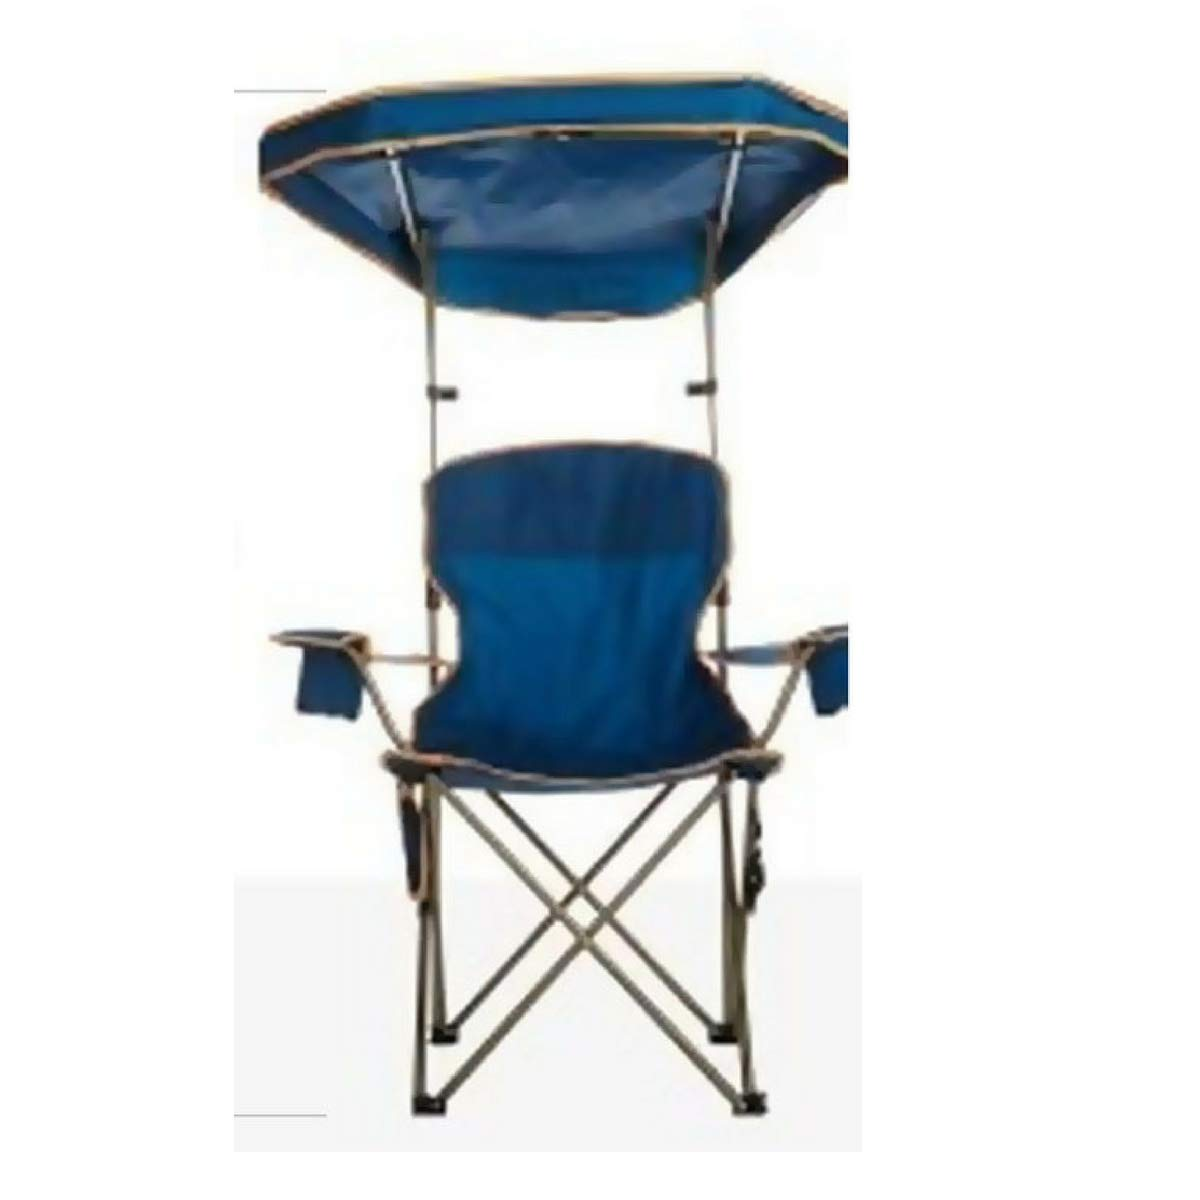 Indipartex Folding Chair with Hood Portable Folding Camp Chair with Adjustable MAX Shade Canopy Protection from Both Sun and Rain Lightweight and Easy to Use No Assembly Required Navy